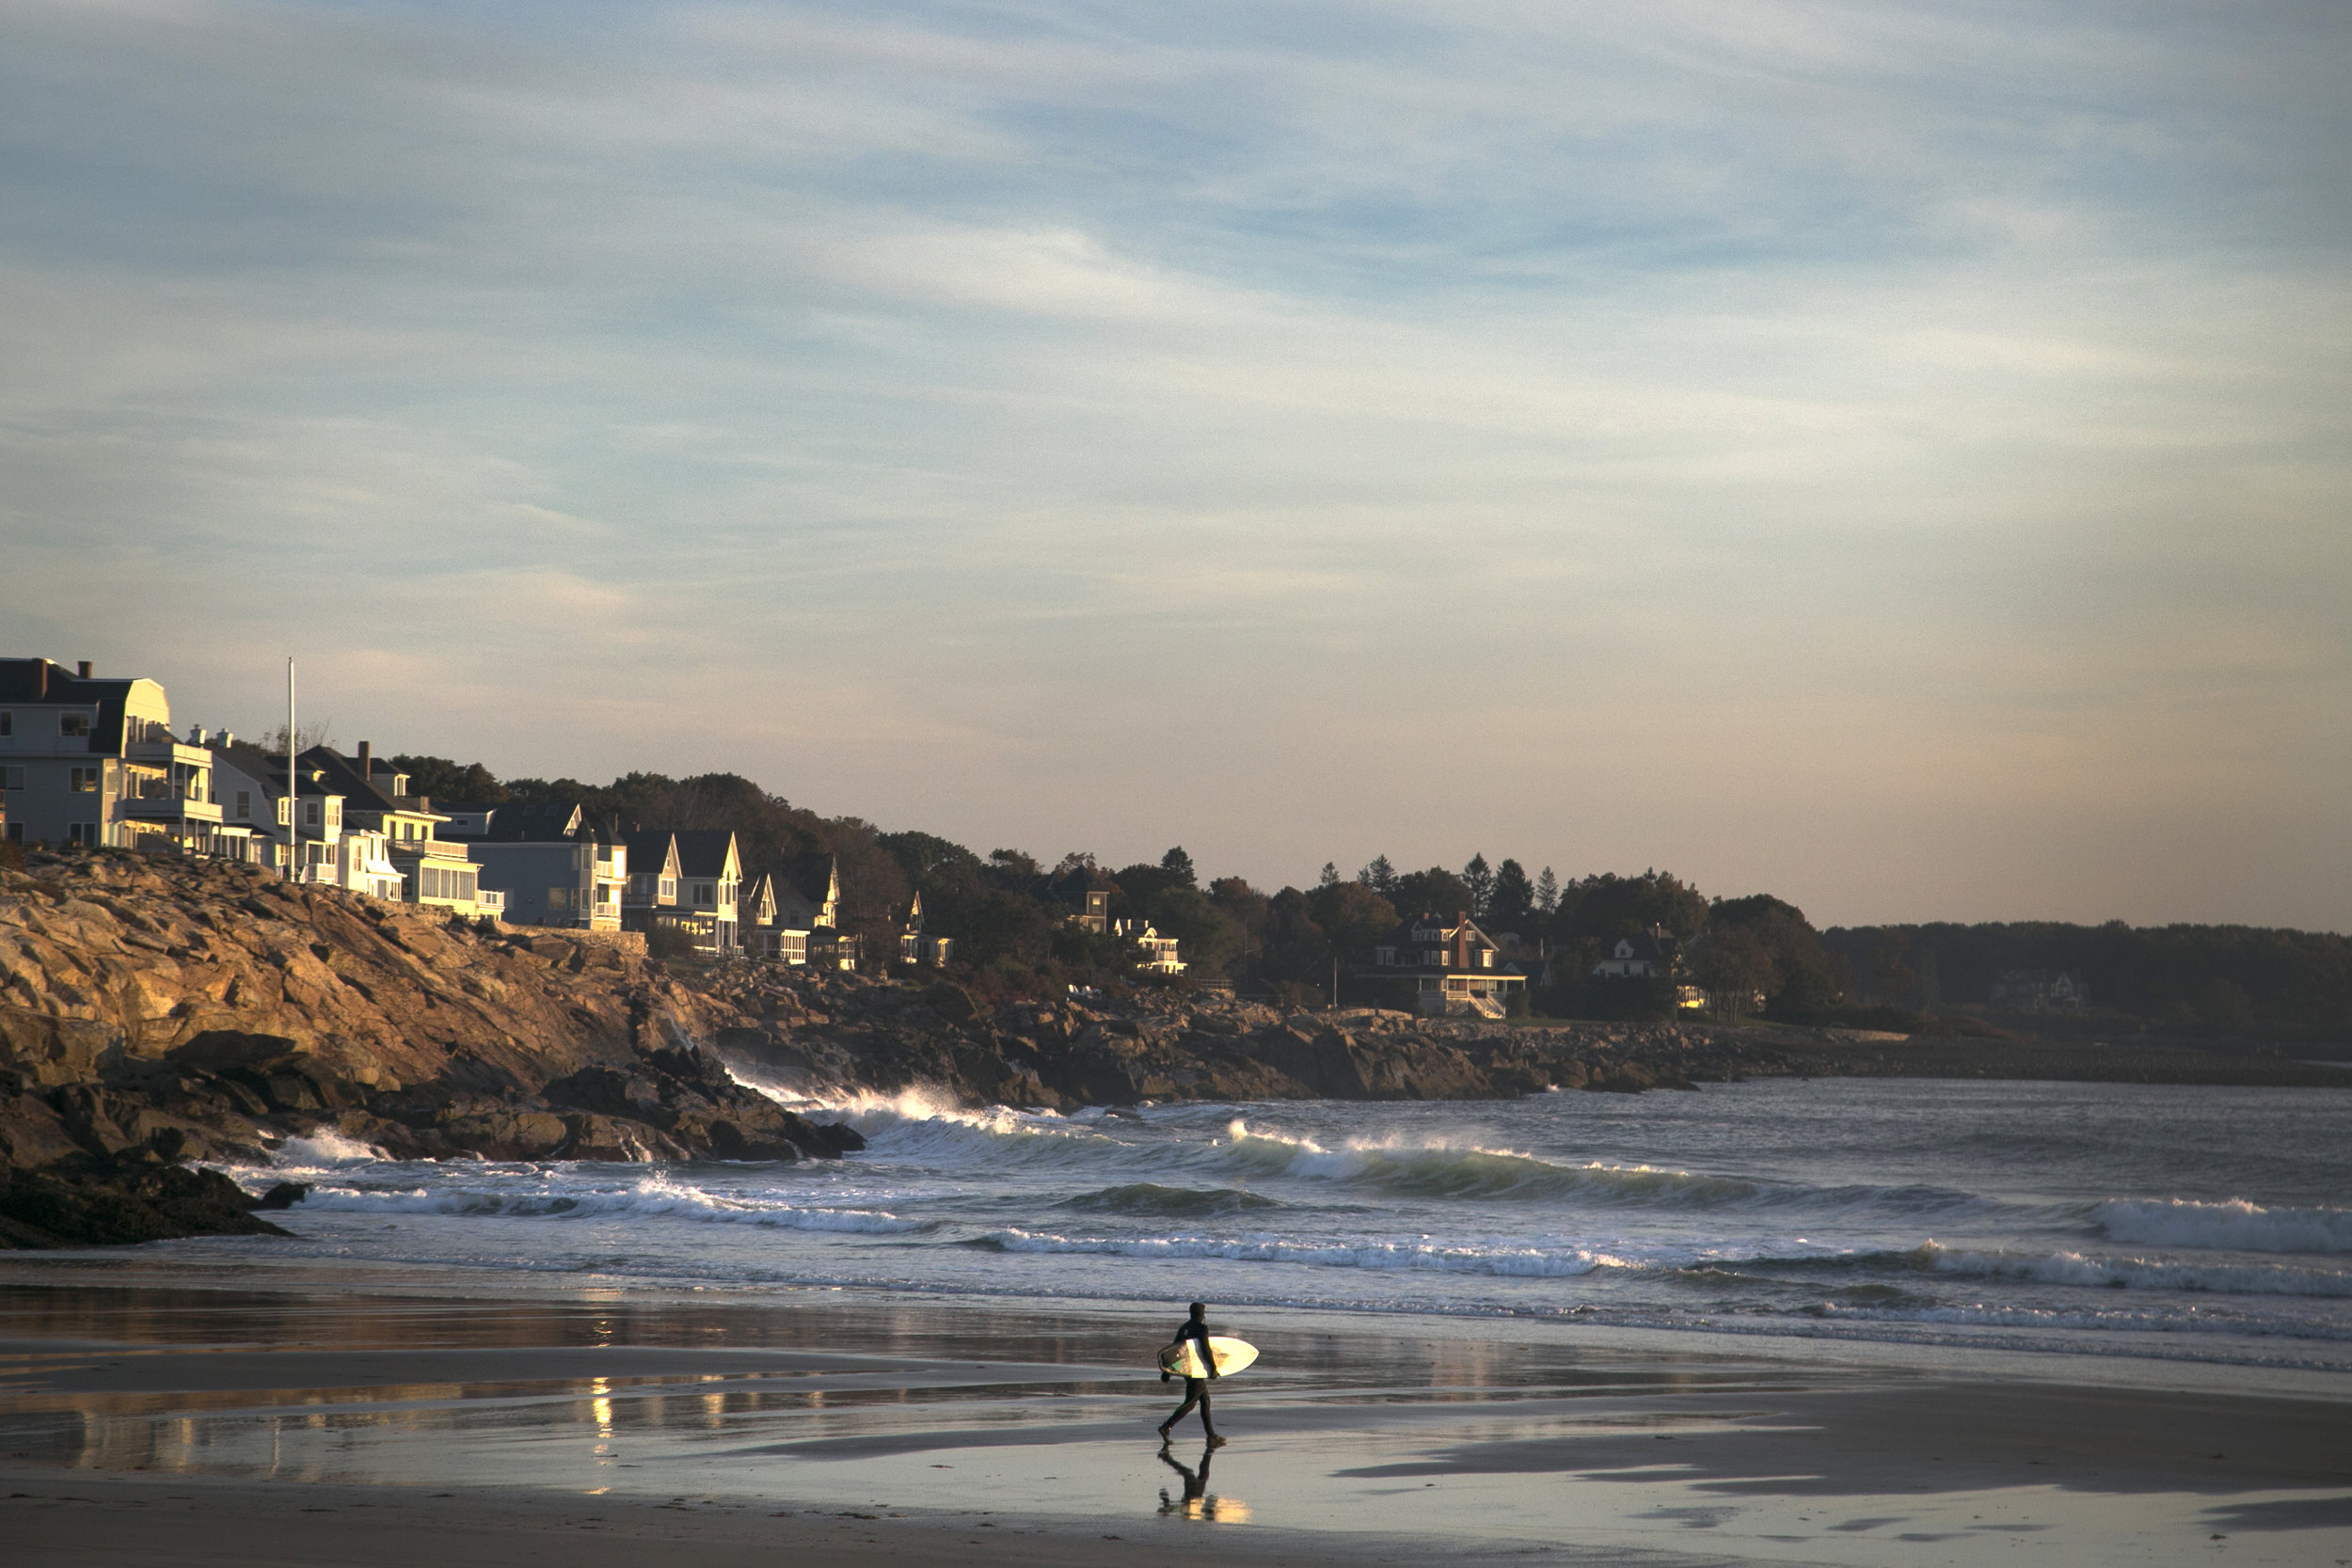 A surfer enters the waters off the coast of York, Maine where wave chasers flock to beaches in mid-October in search of good surfing days.